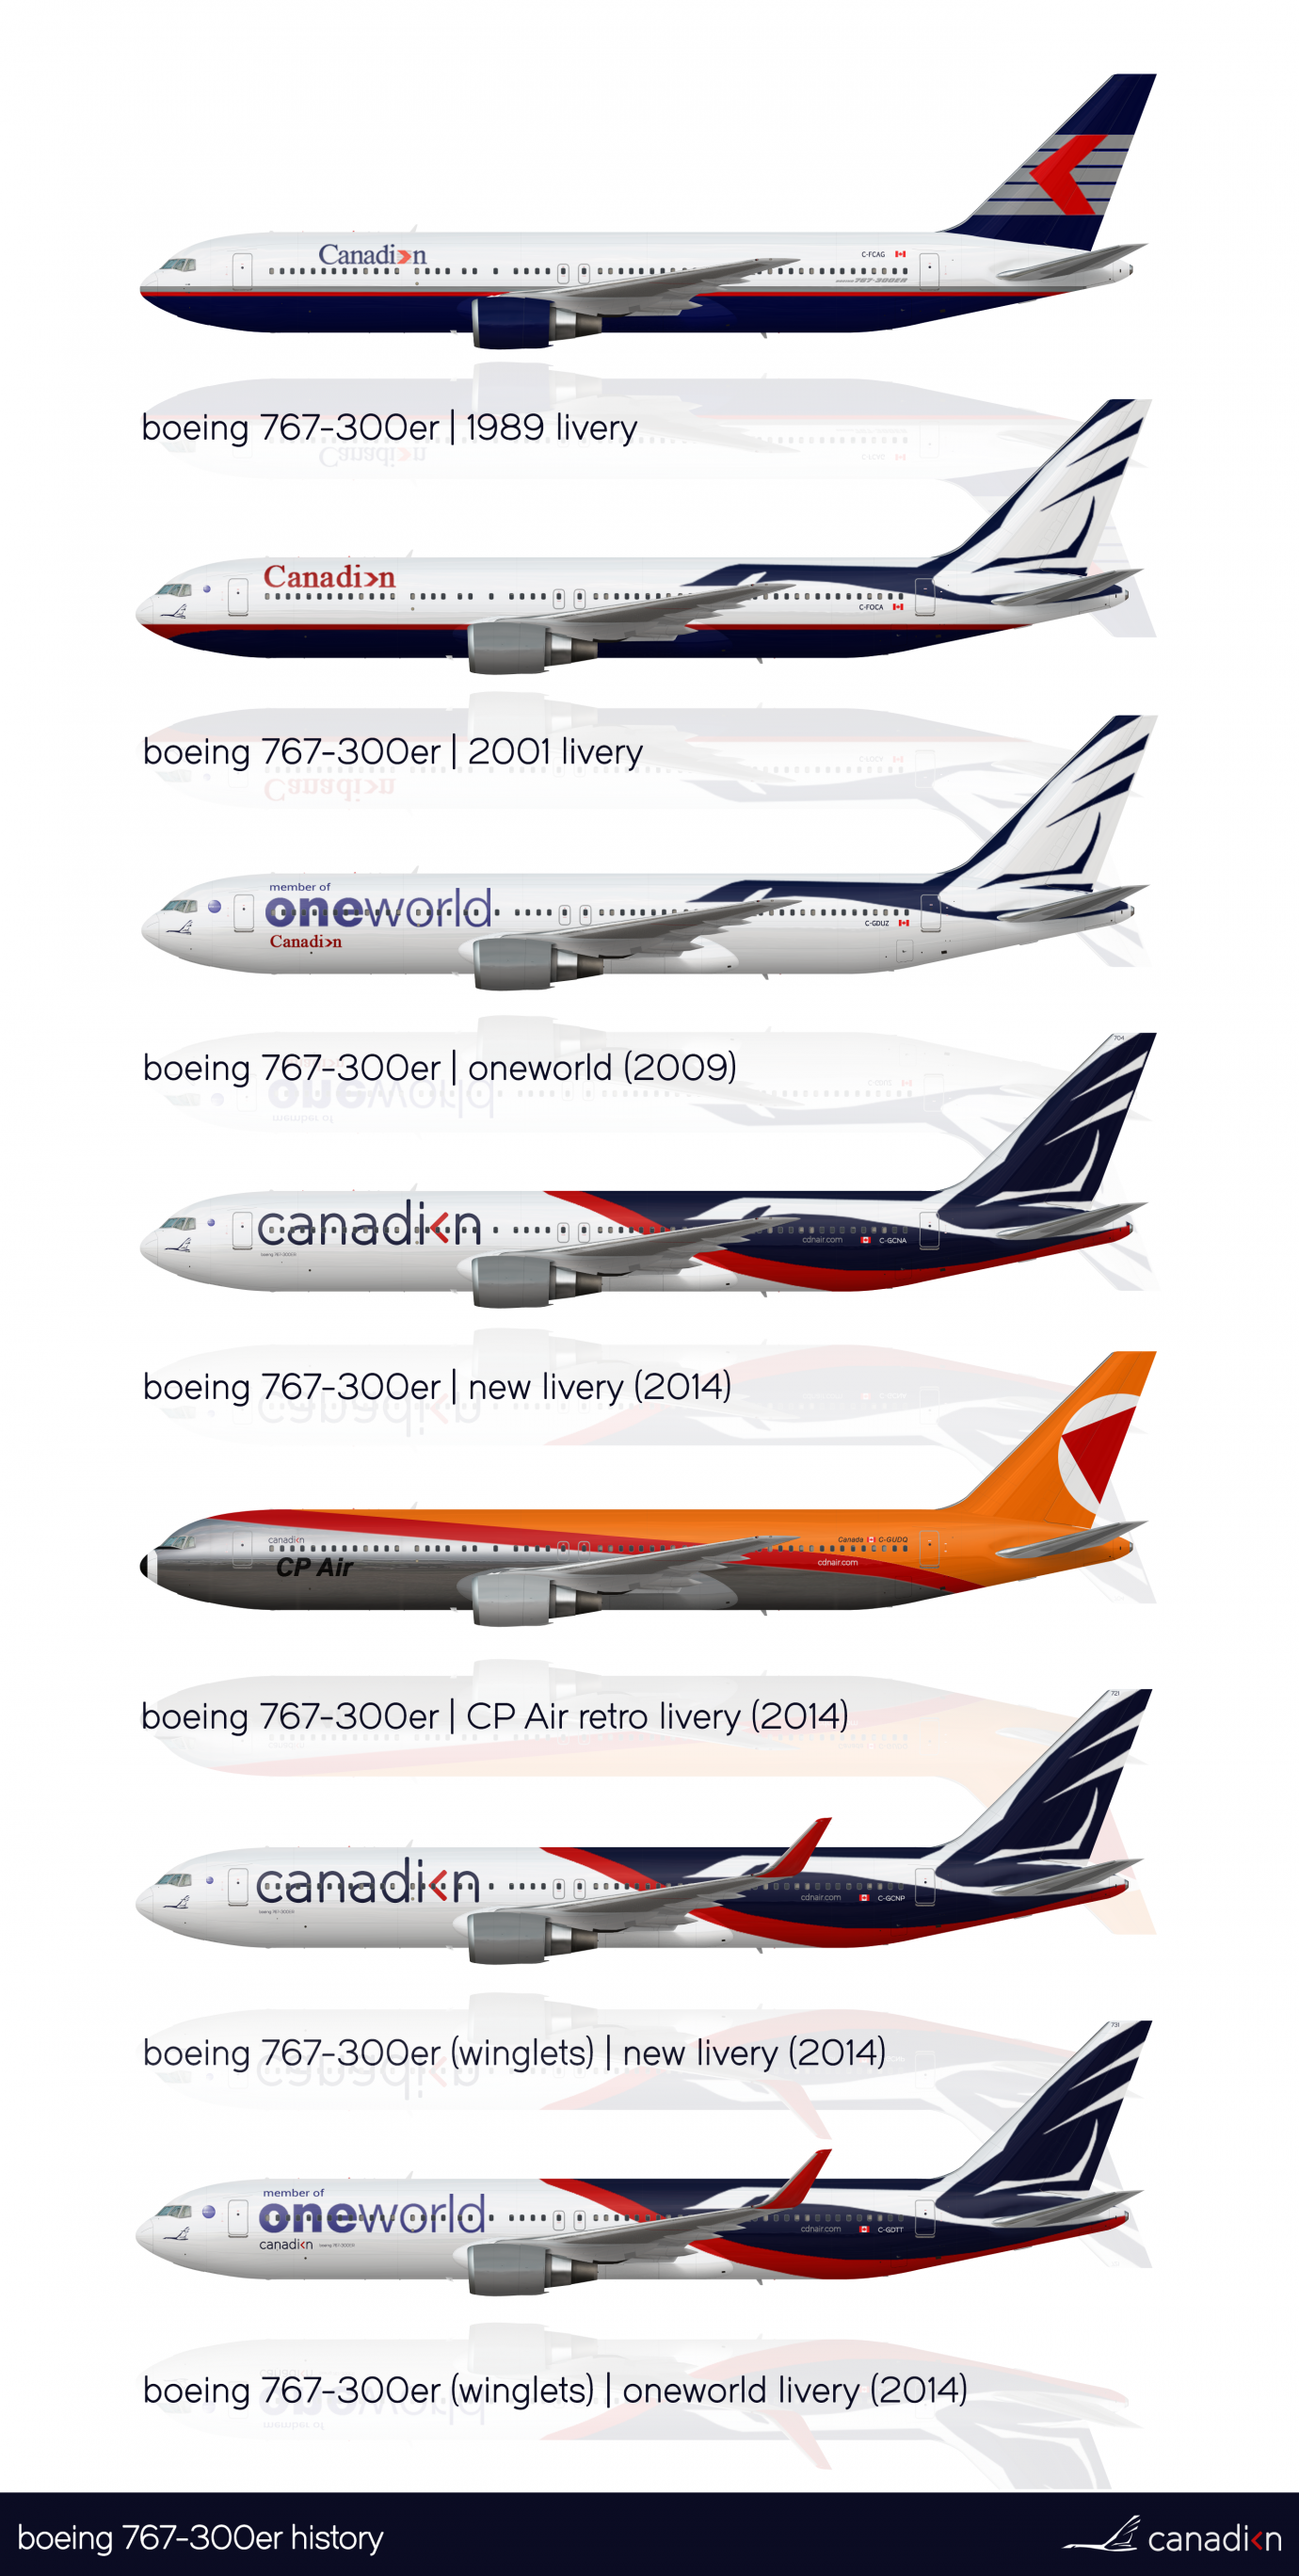 Canadian Airlines 767 Livery History Canadian Airlines